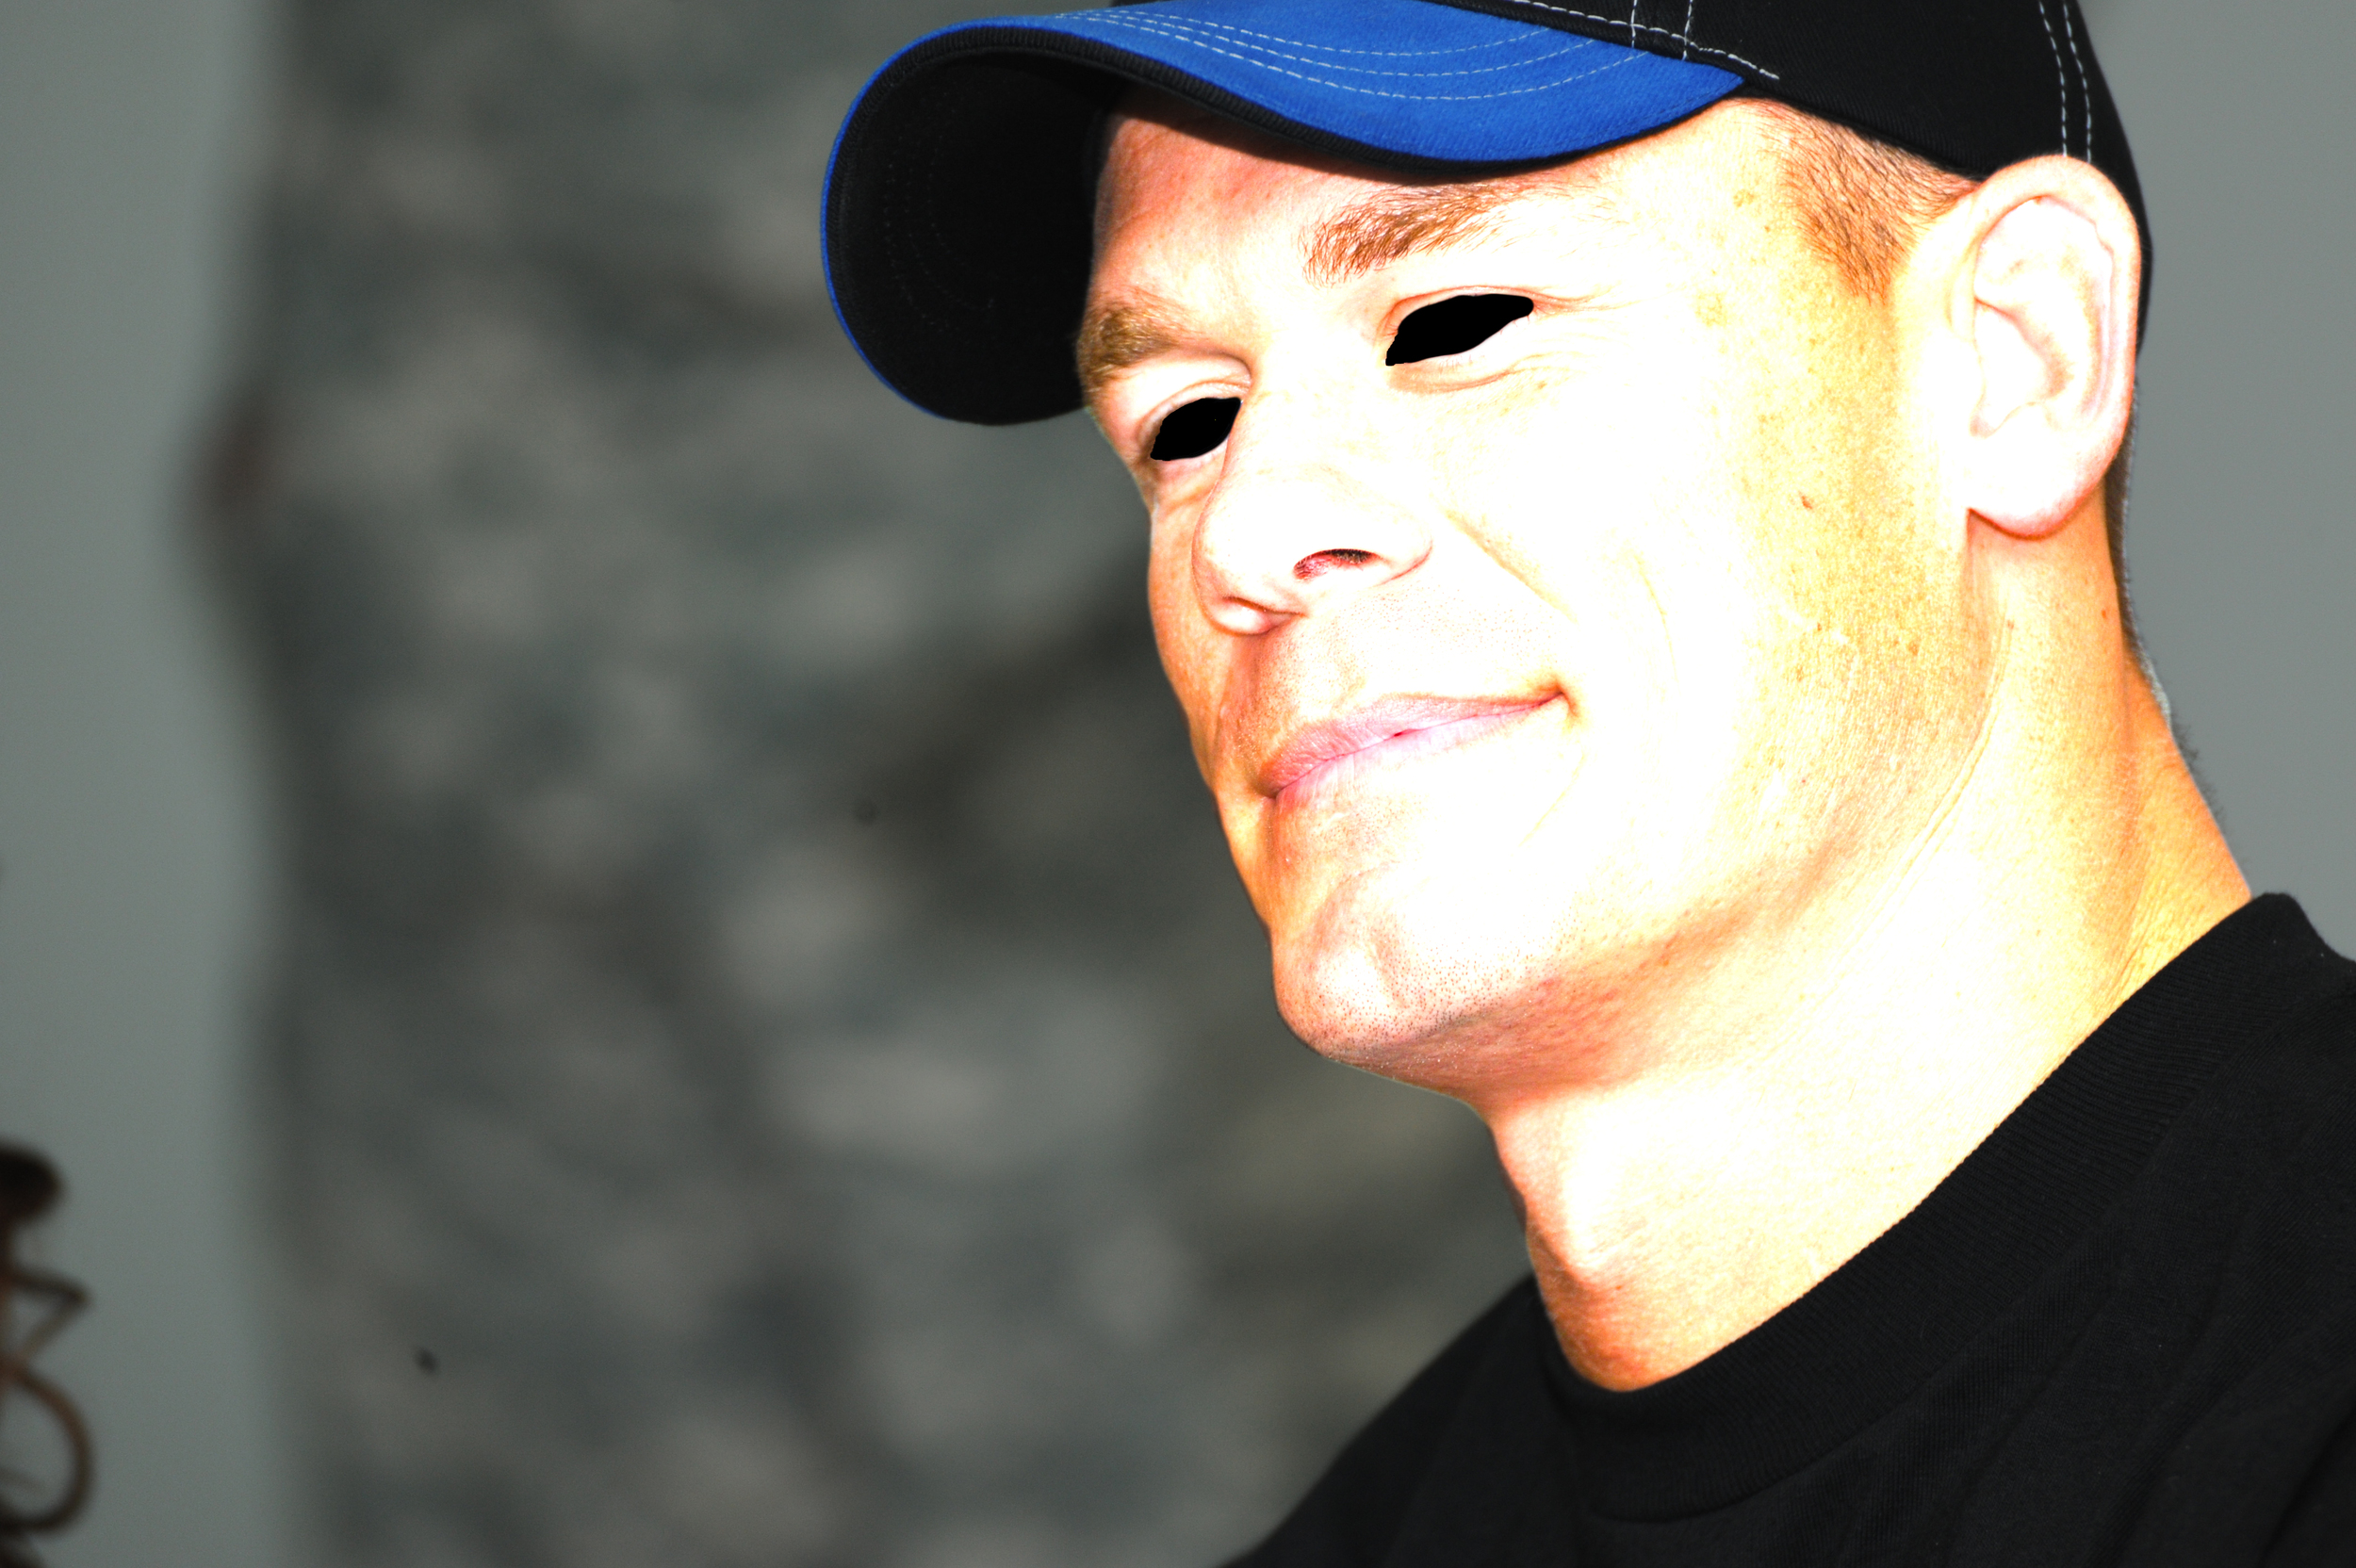 Demonic John Cena, via flickr (modified)